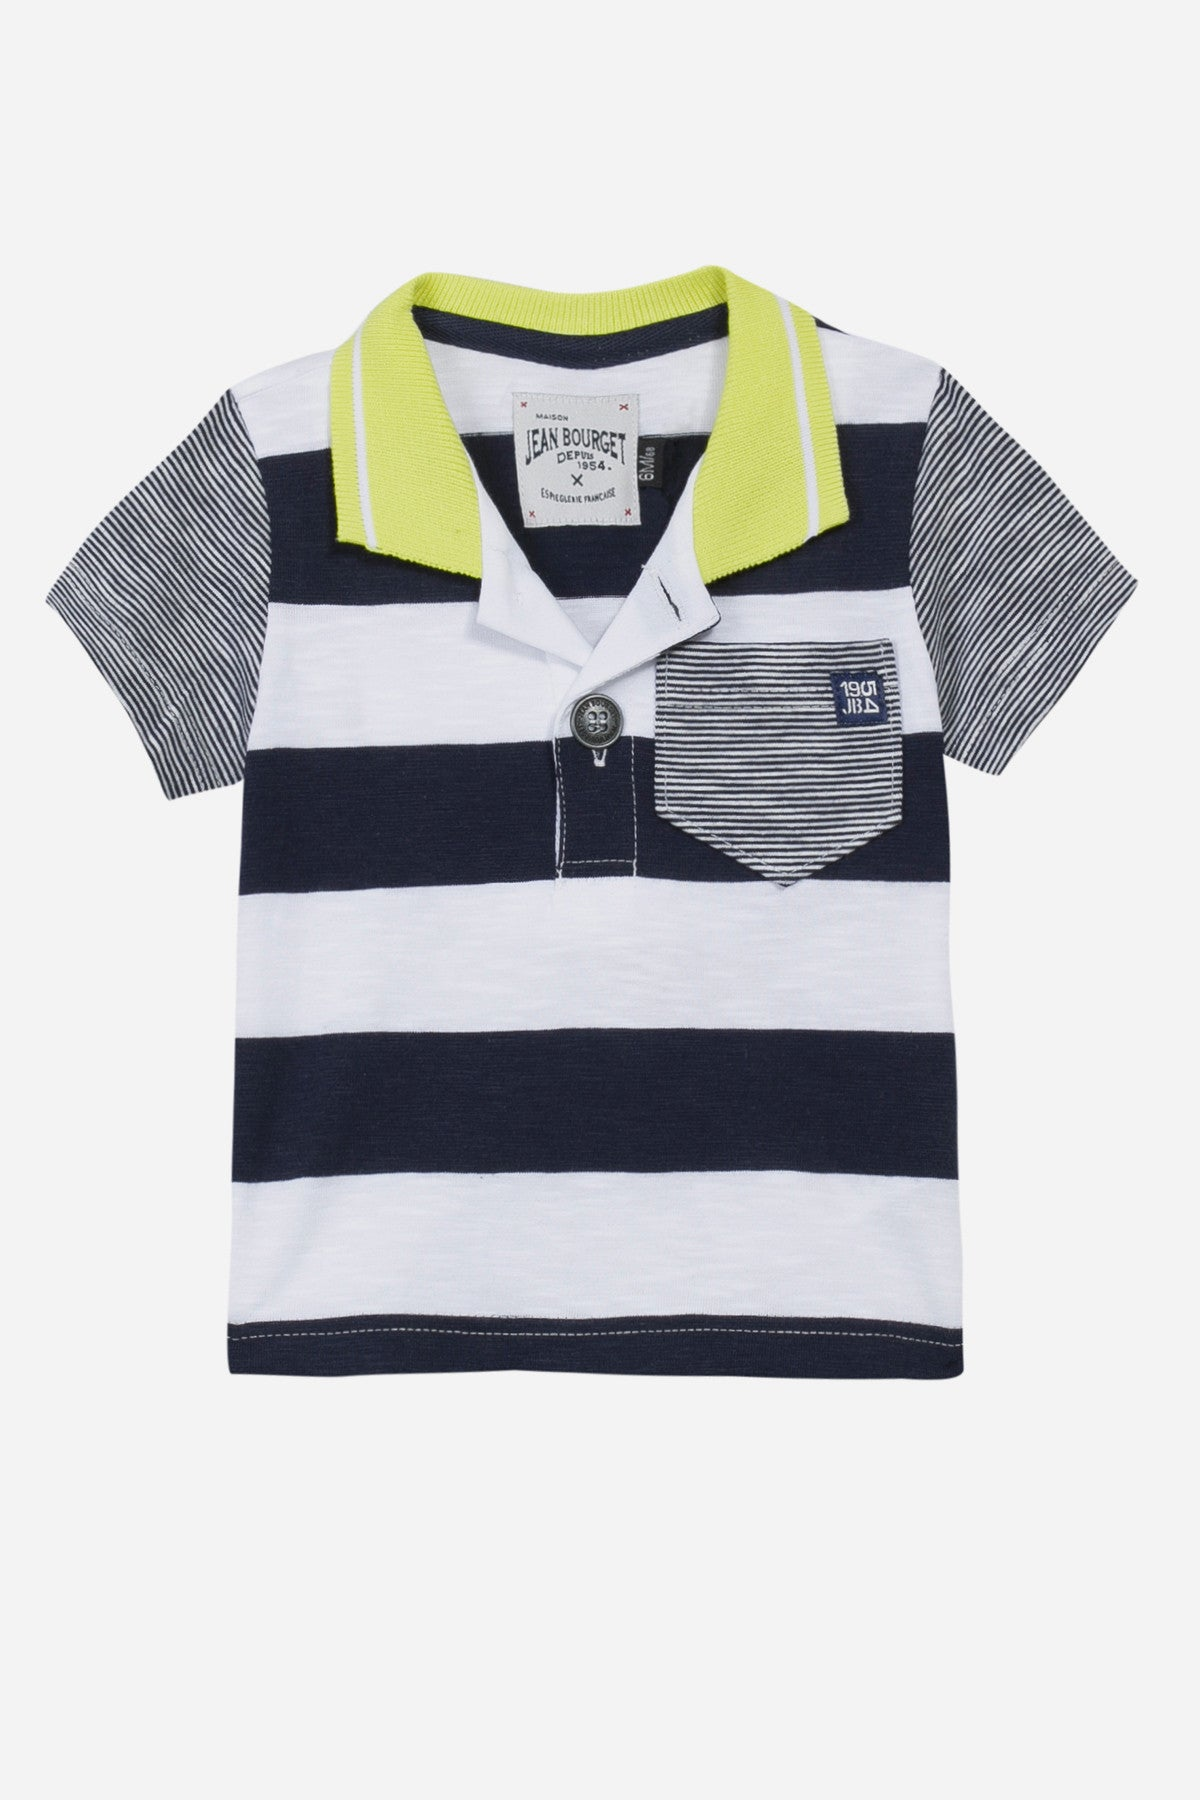 6ab6d3663 Jean Bourget Baby Boys Polo Shirt at Mini Ruby Contemporary ...